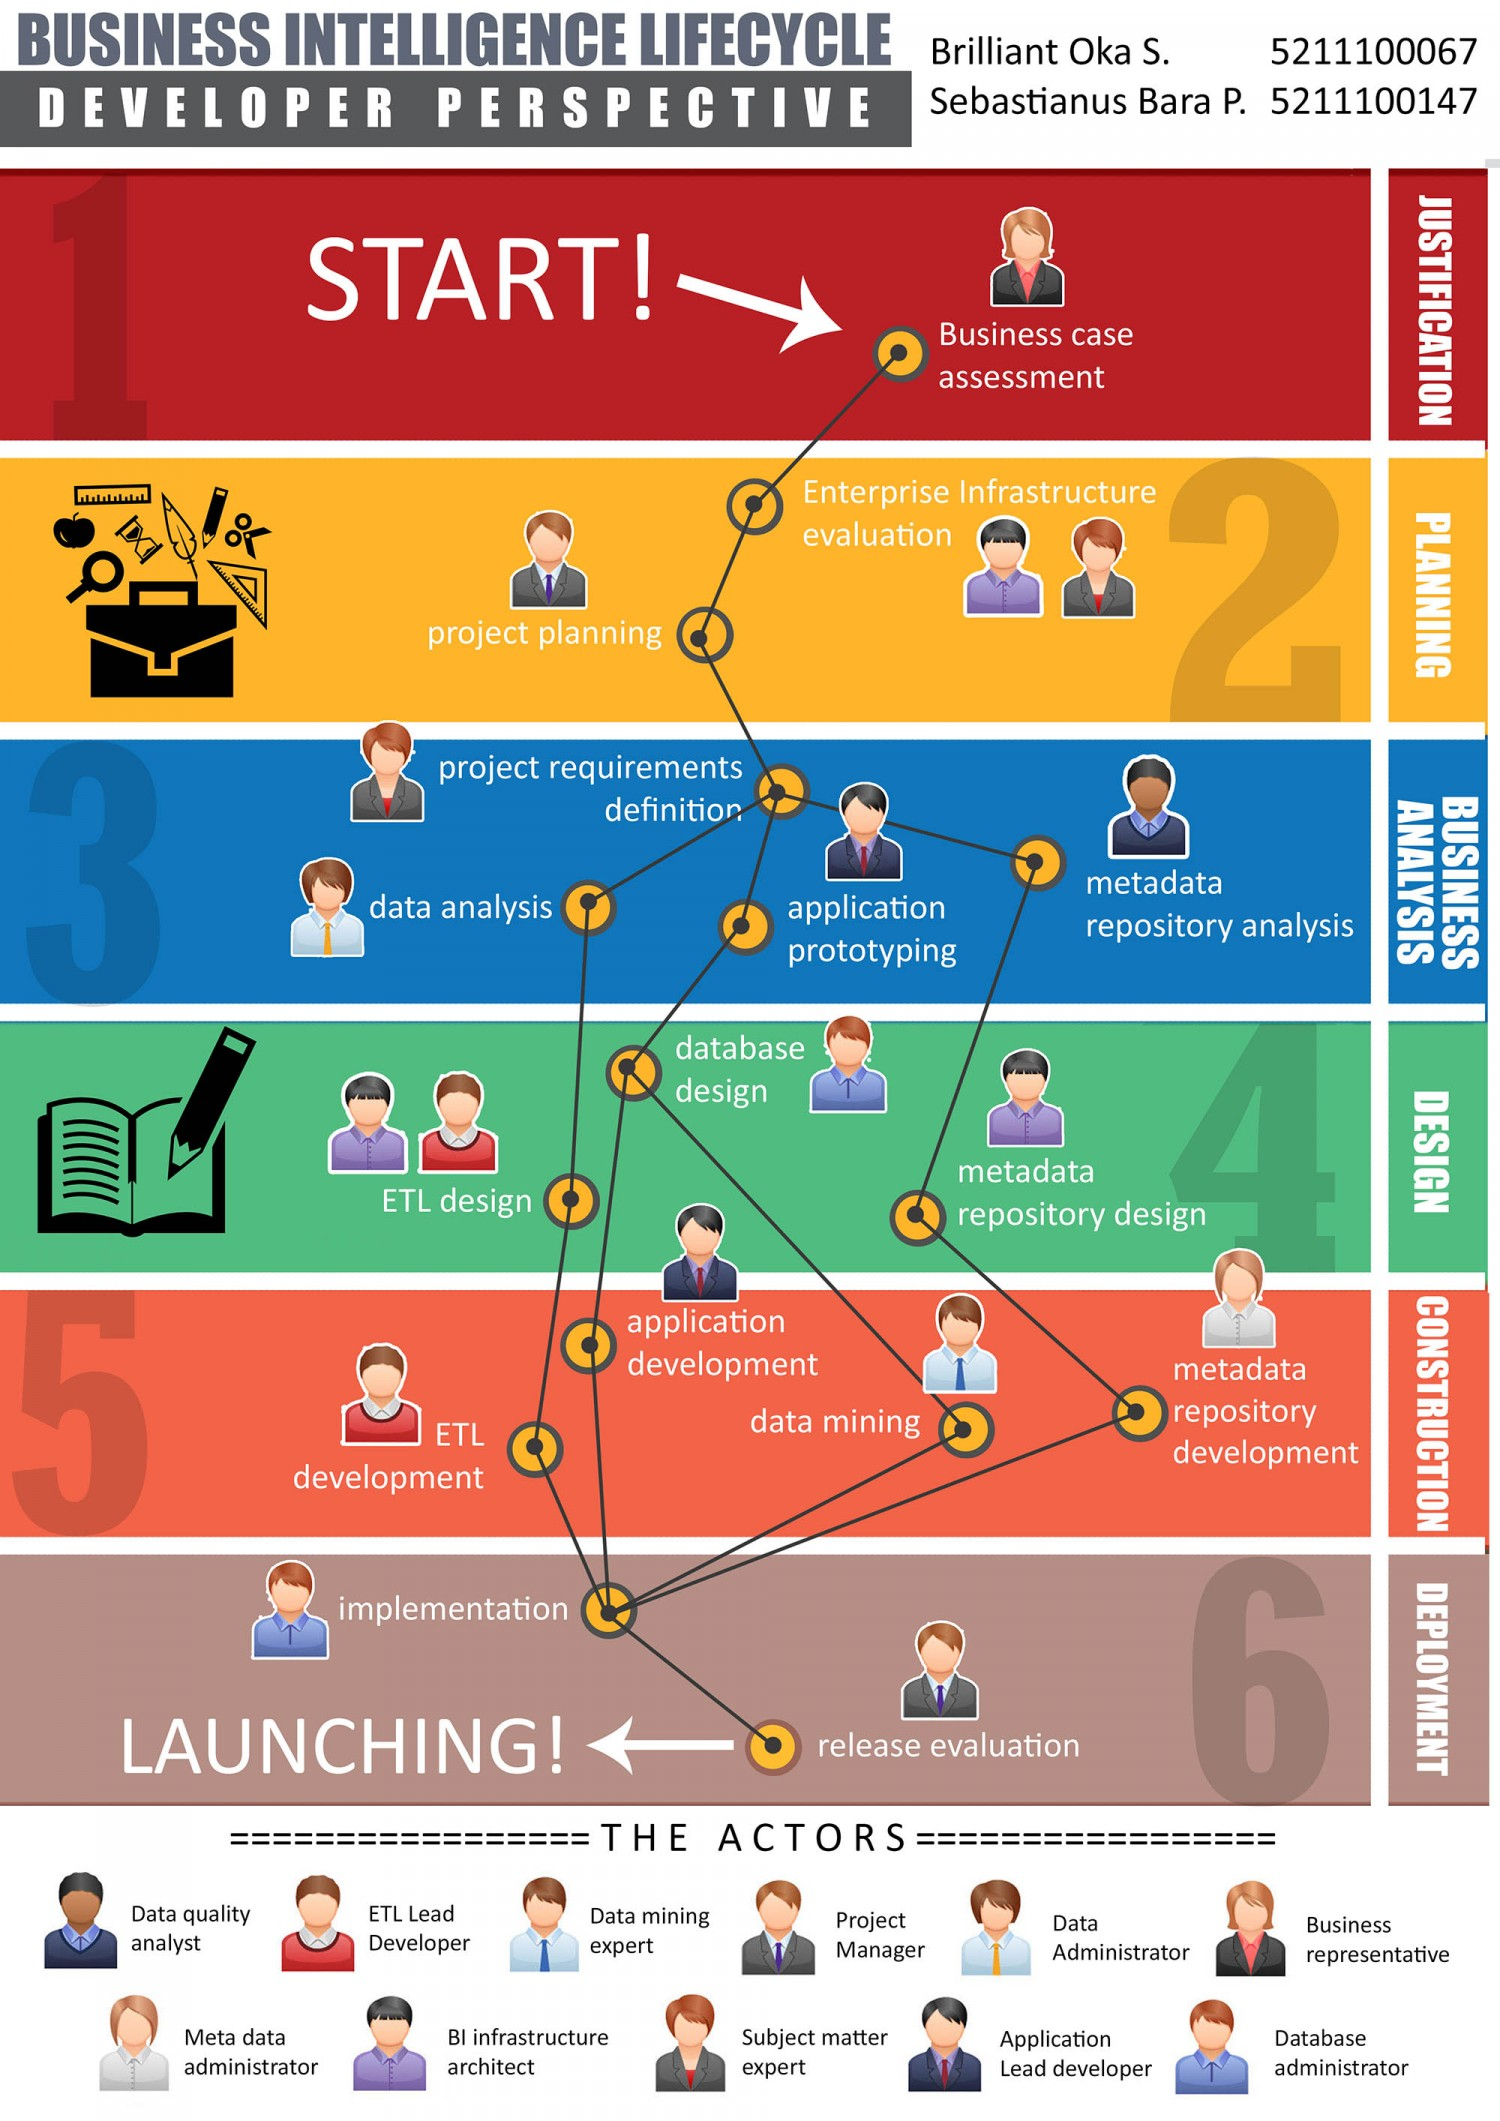 Business Intelligence Life Cycle